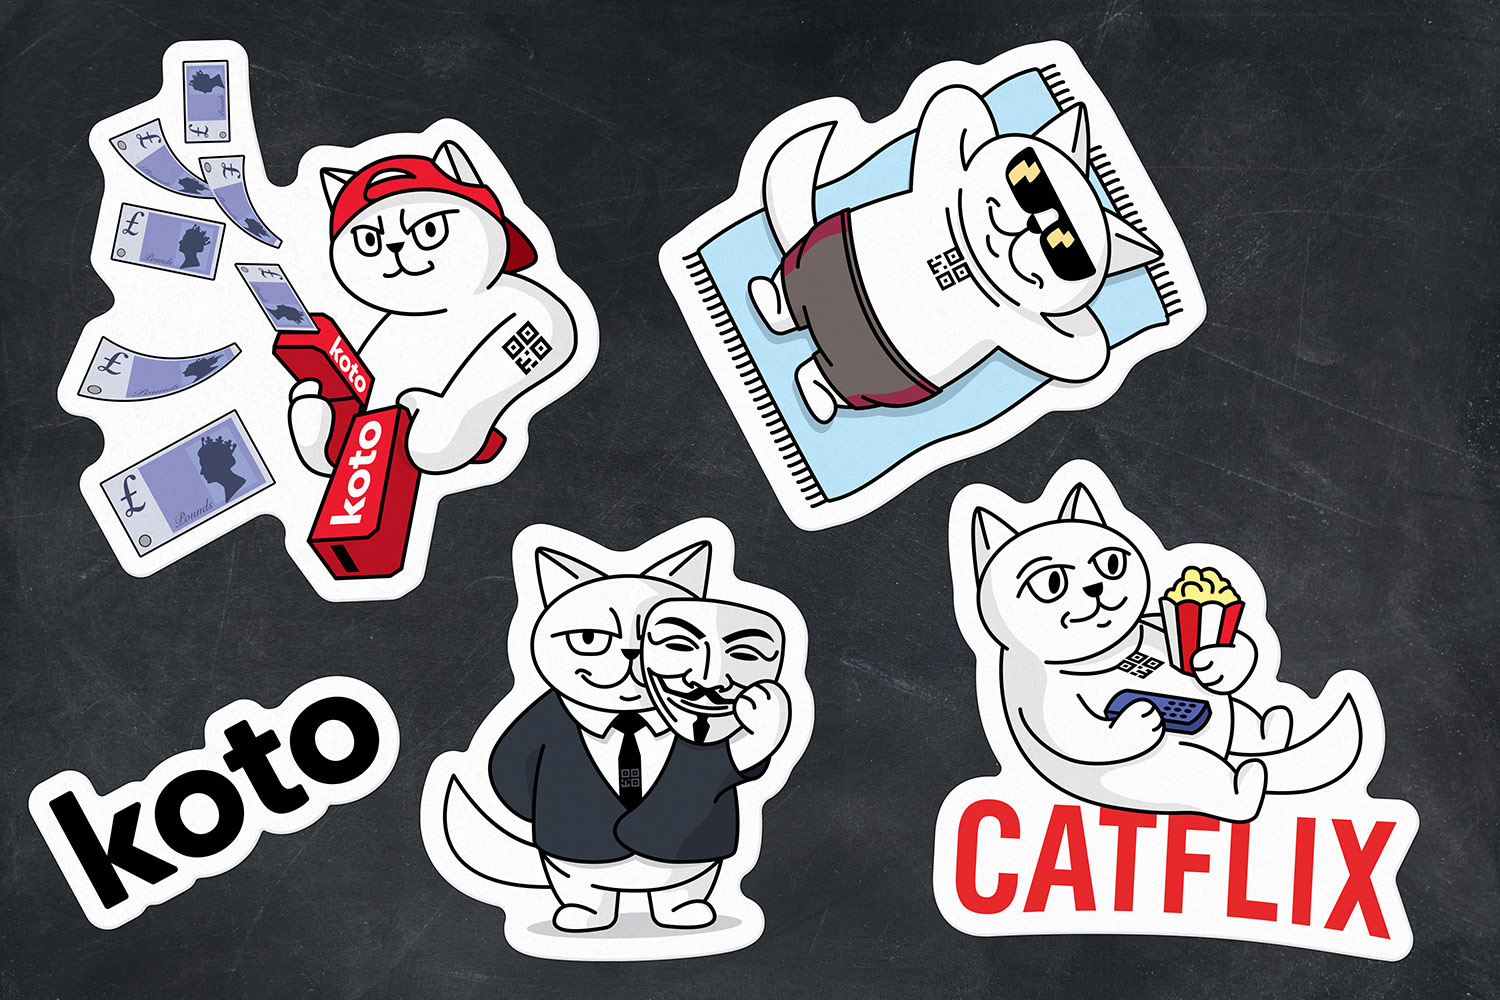 Set of koto stickers. Sticker pack: money gun, catflix, cat on the beach, Anonymous cat.